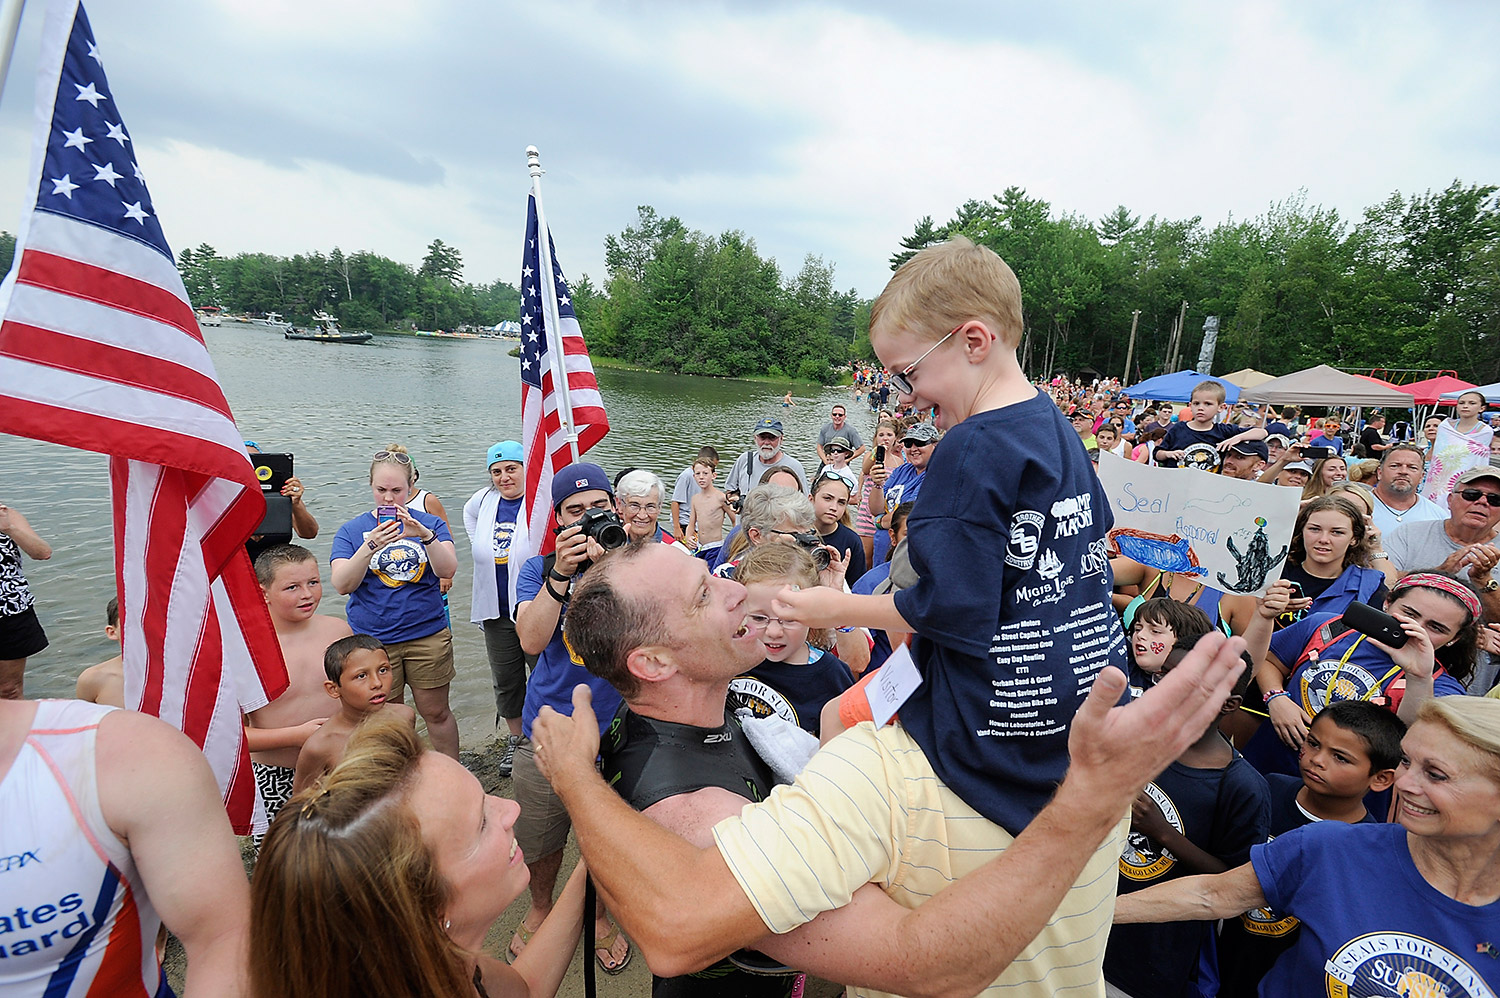 A Navy SEAL is welcomed by his family after completing the Summit to Sunshine Challenge, a reverse triathlon, at Point Sebago Resort on Thursday. The challenge consists of a 7.6-mile run down Mt. Washington, an 83.4-mile bike ride from New Hampshire to Sebago Lake, and then a 3.9-mile swim ending at Point Sebago Resort.